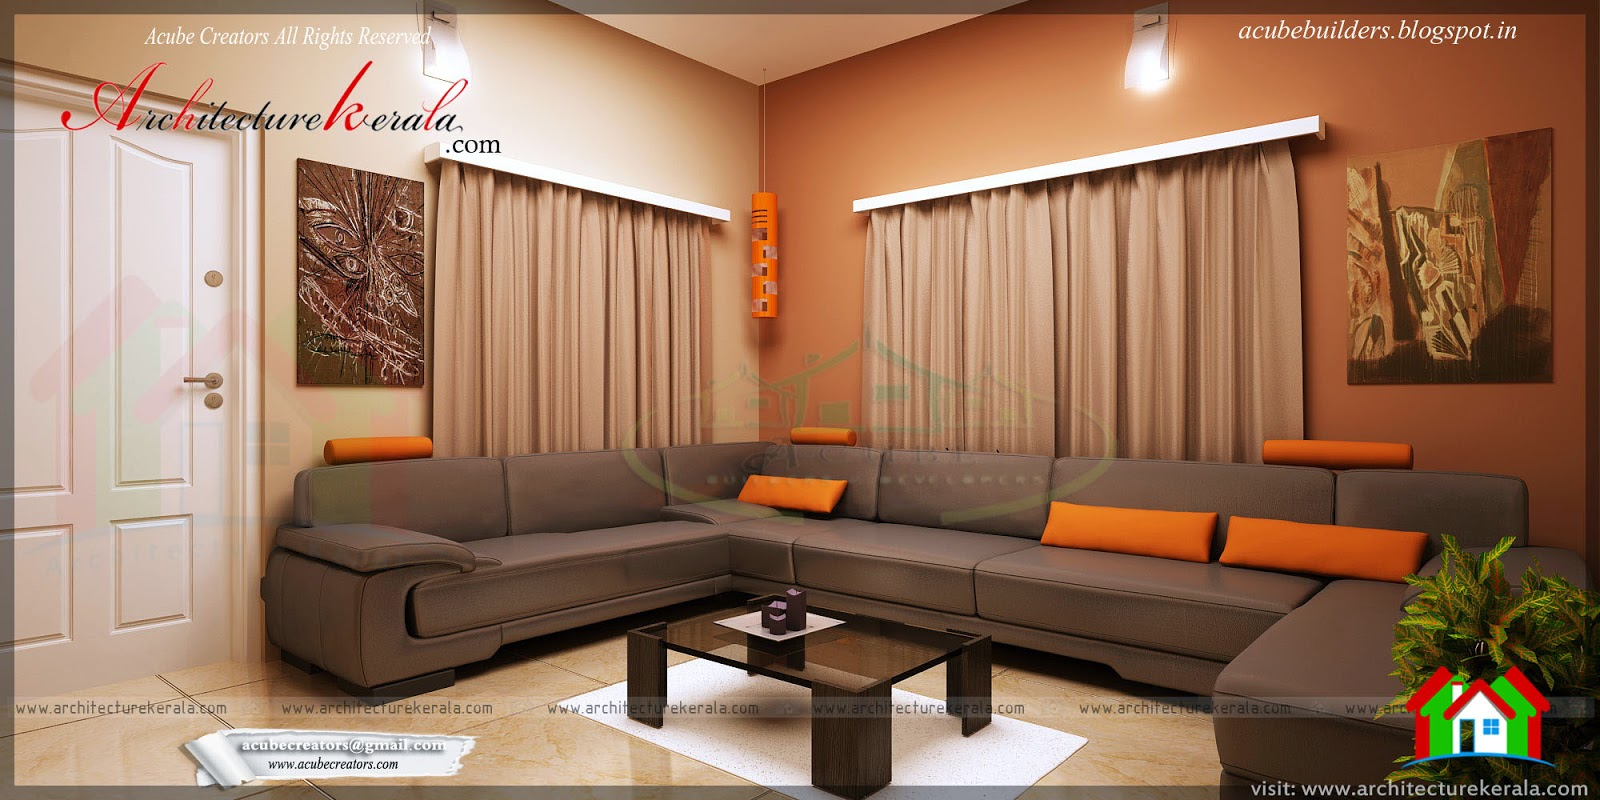 DRAWING ROOM INTERIOR DESIGN - ARCHITECTURE KERALA